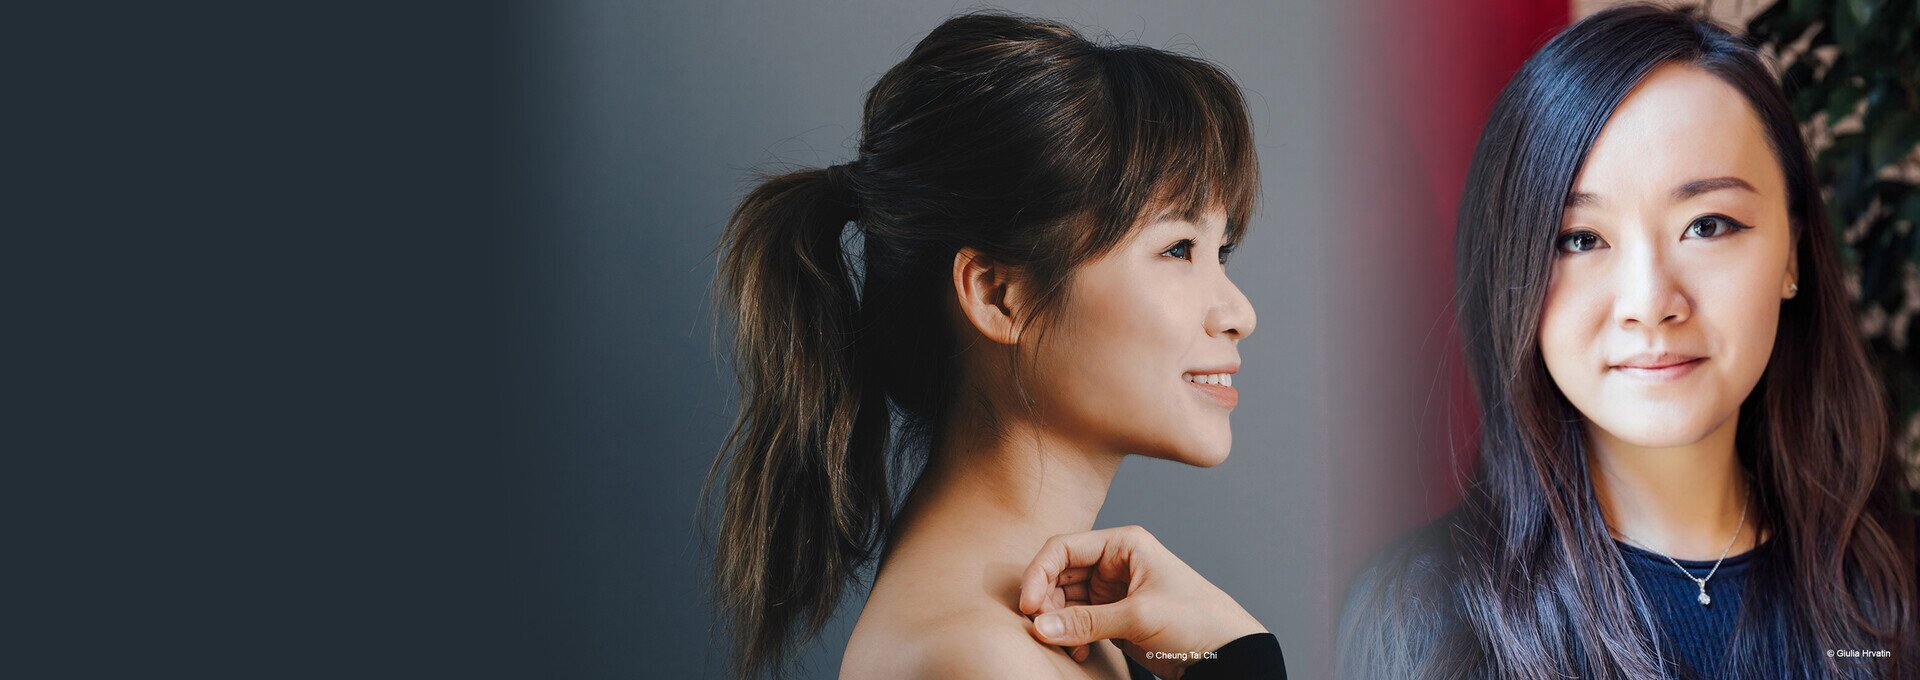 26 FEB 2020 (Wed) 8:00pm